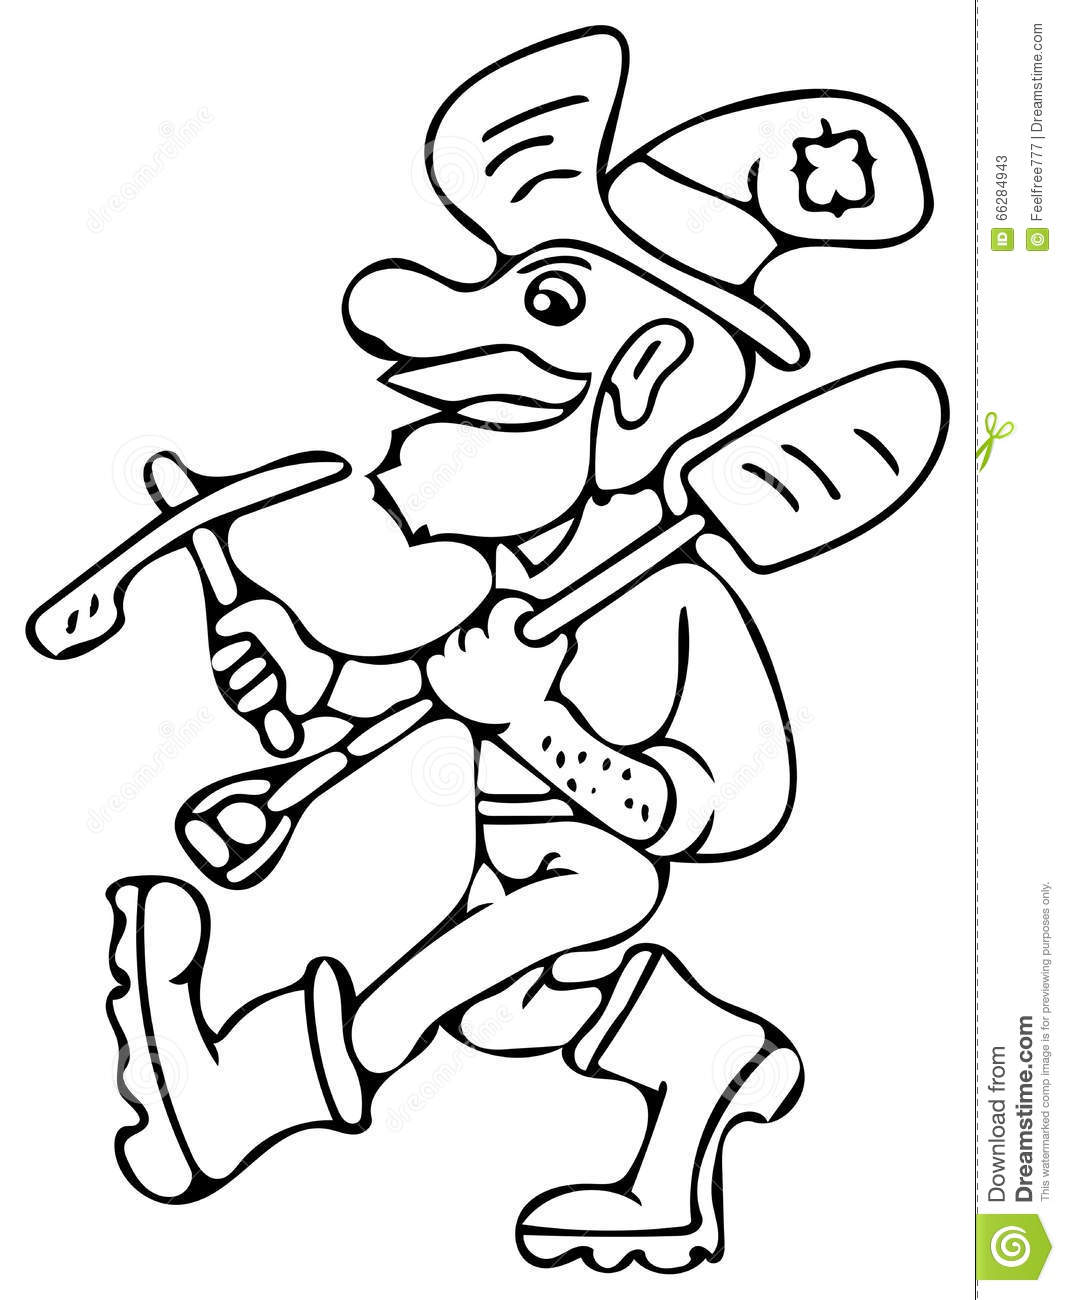 1065x1300 Gold Rush Coloring Pages Very High Hand Drawing Illustration